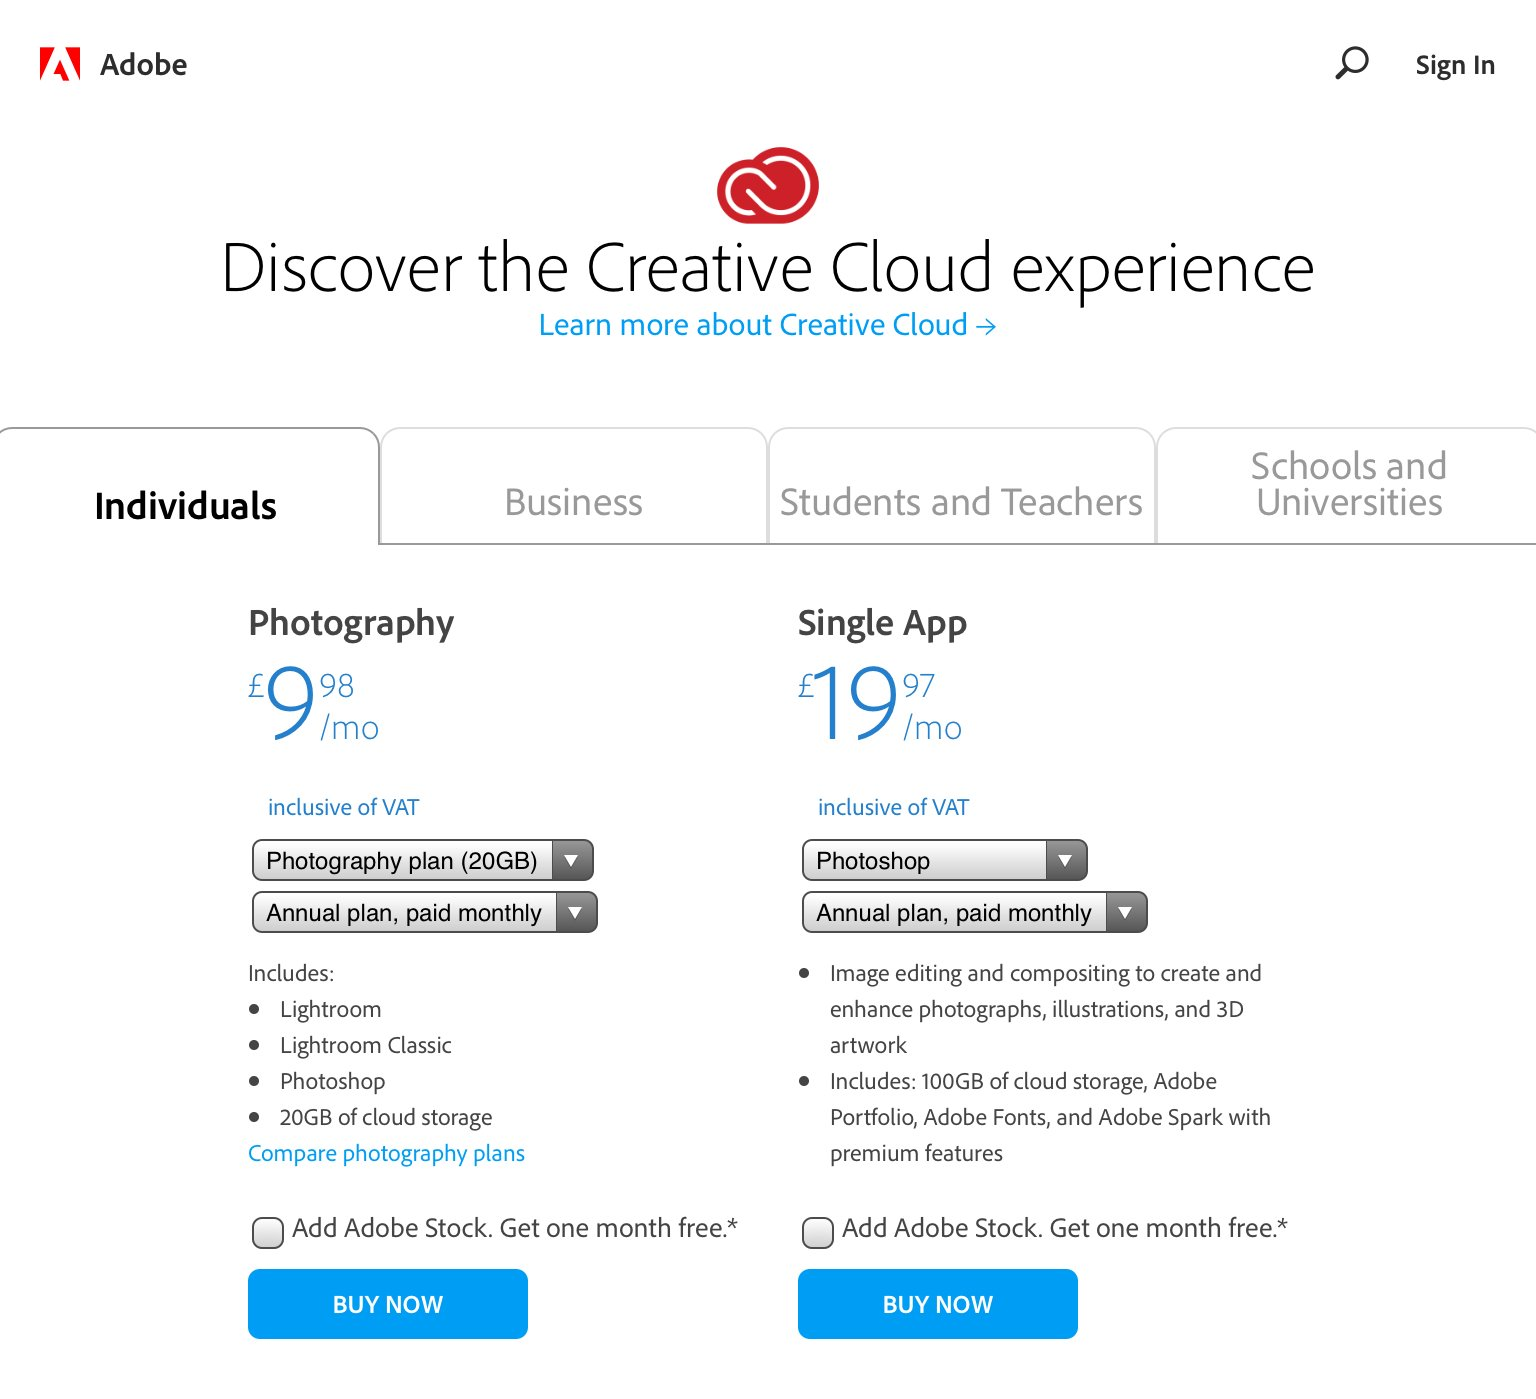 Adobe doubles subscription price - Affinity on Desktop Questions